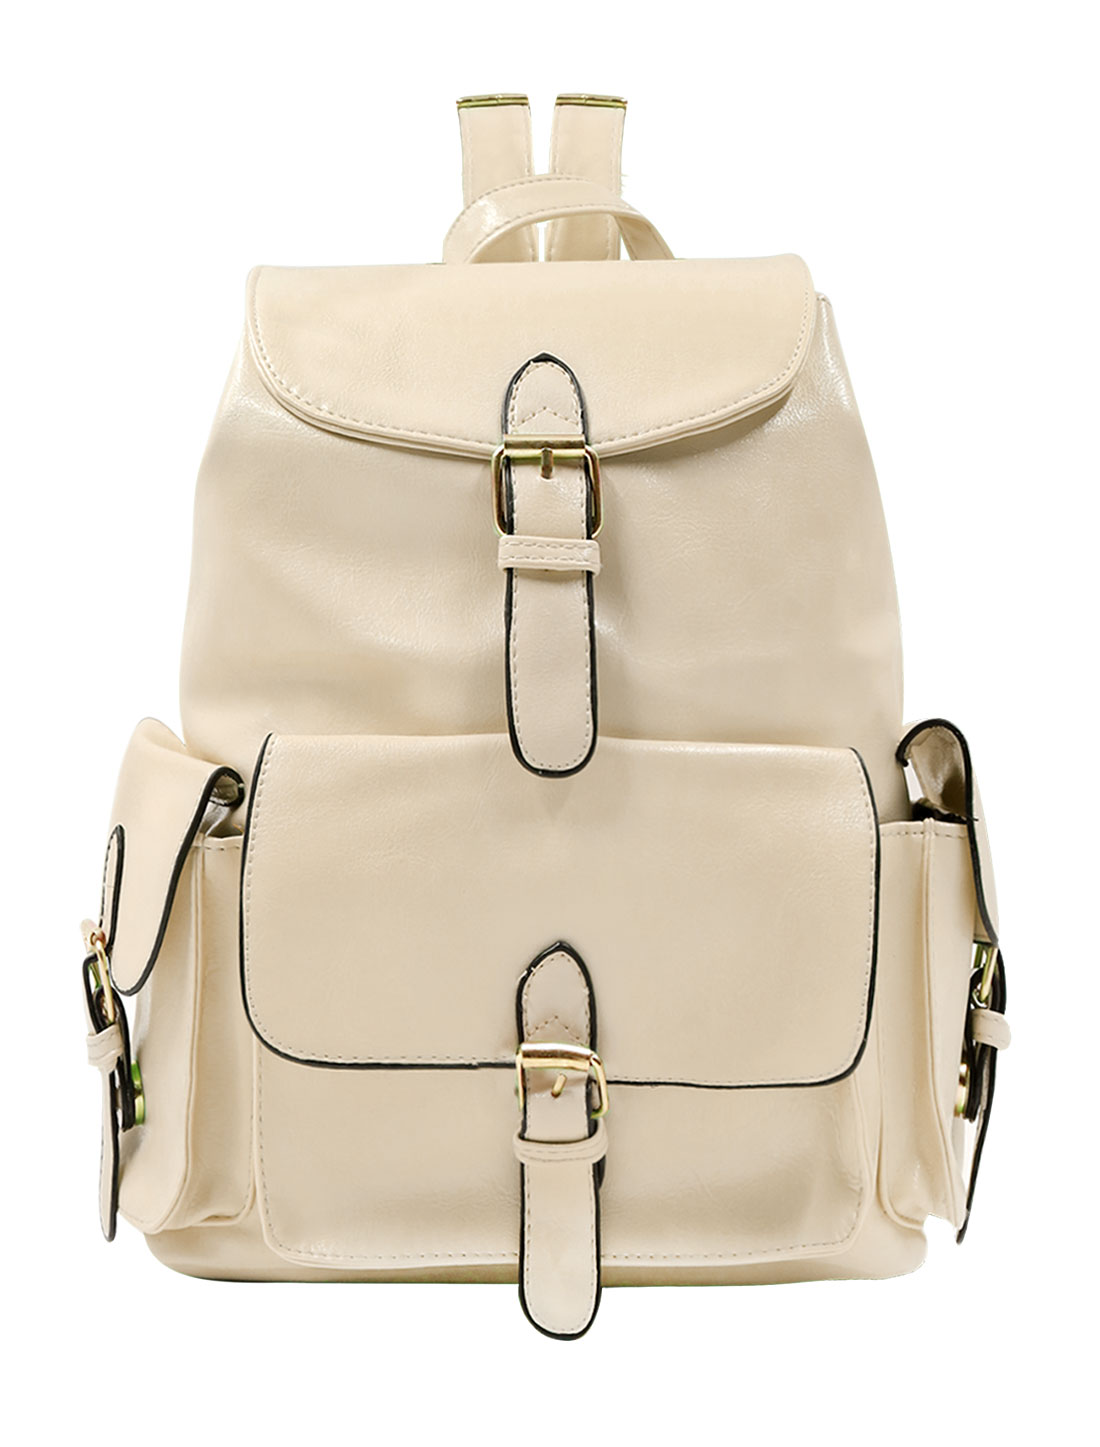 Woman Buckled Drawstring Flap-Top Imitation Leather Backpack Beige